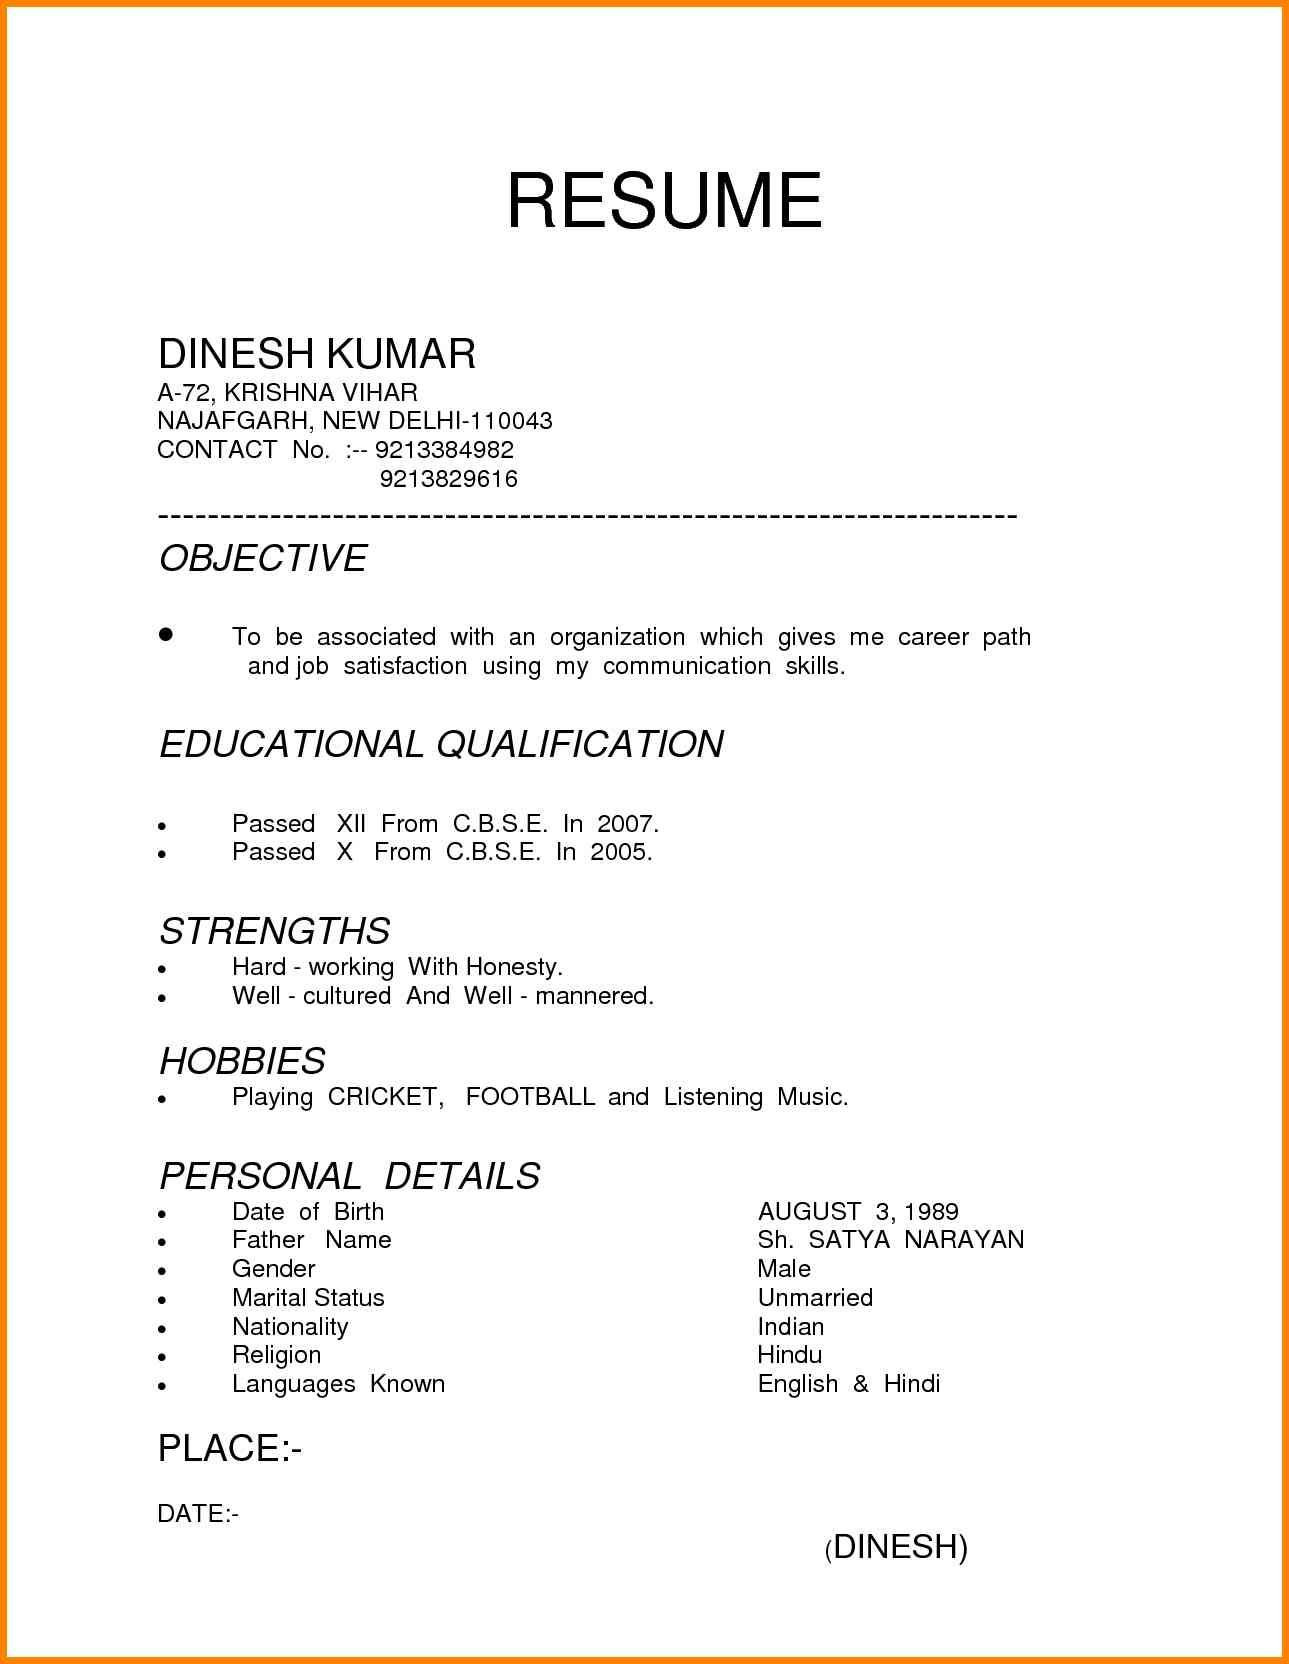 Cover Letter Types Resume Workshop Different Resumes Exampleshow